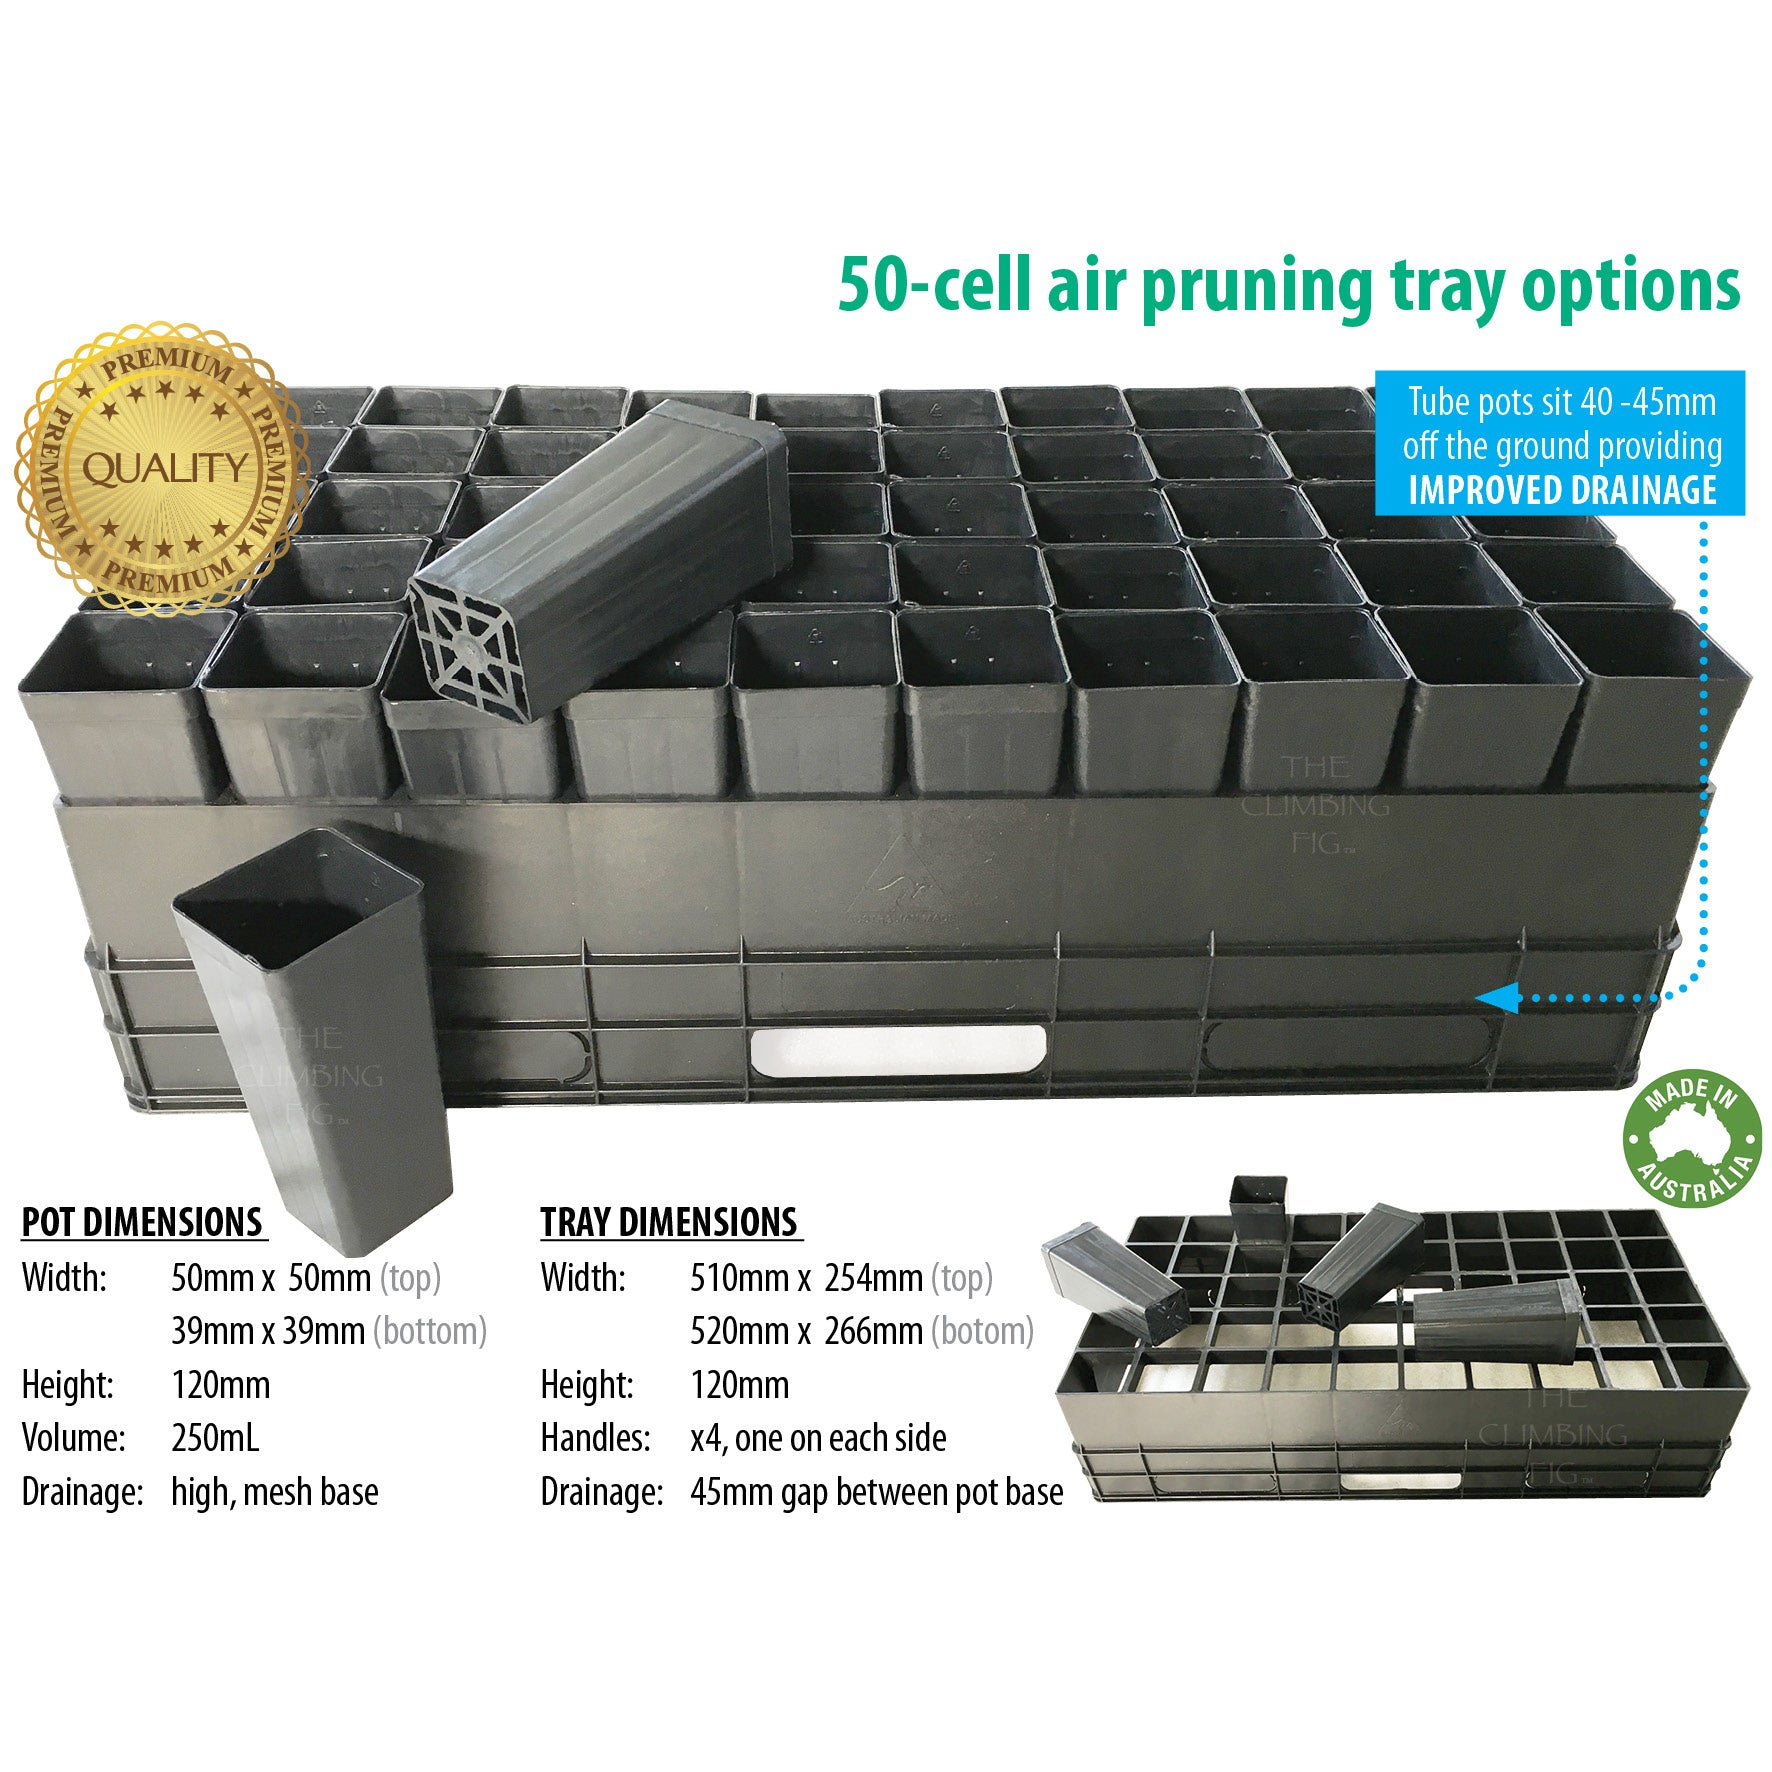 50-Cell Air-Pruning Trays with/without 50mm Native Tube Pots. Plant propagation